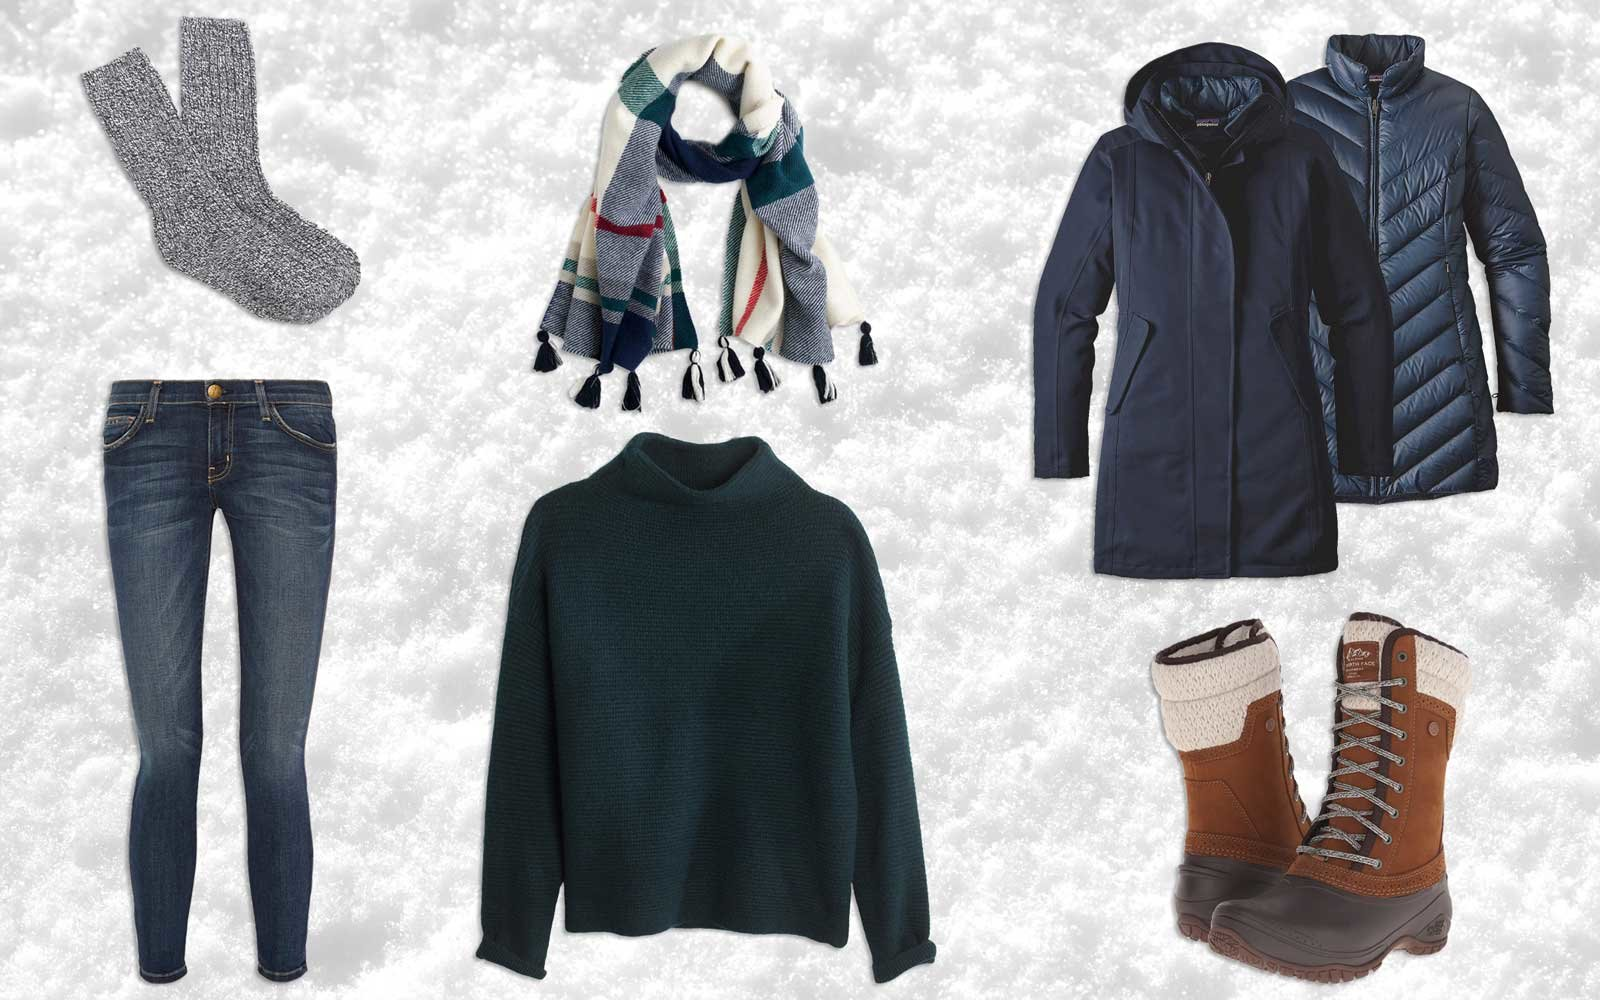 ba71e61ee Stylish Winter Travel Outfits